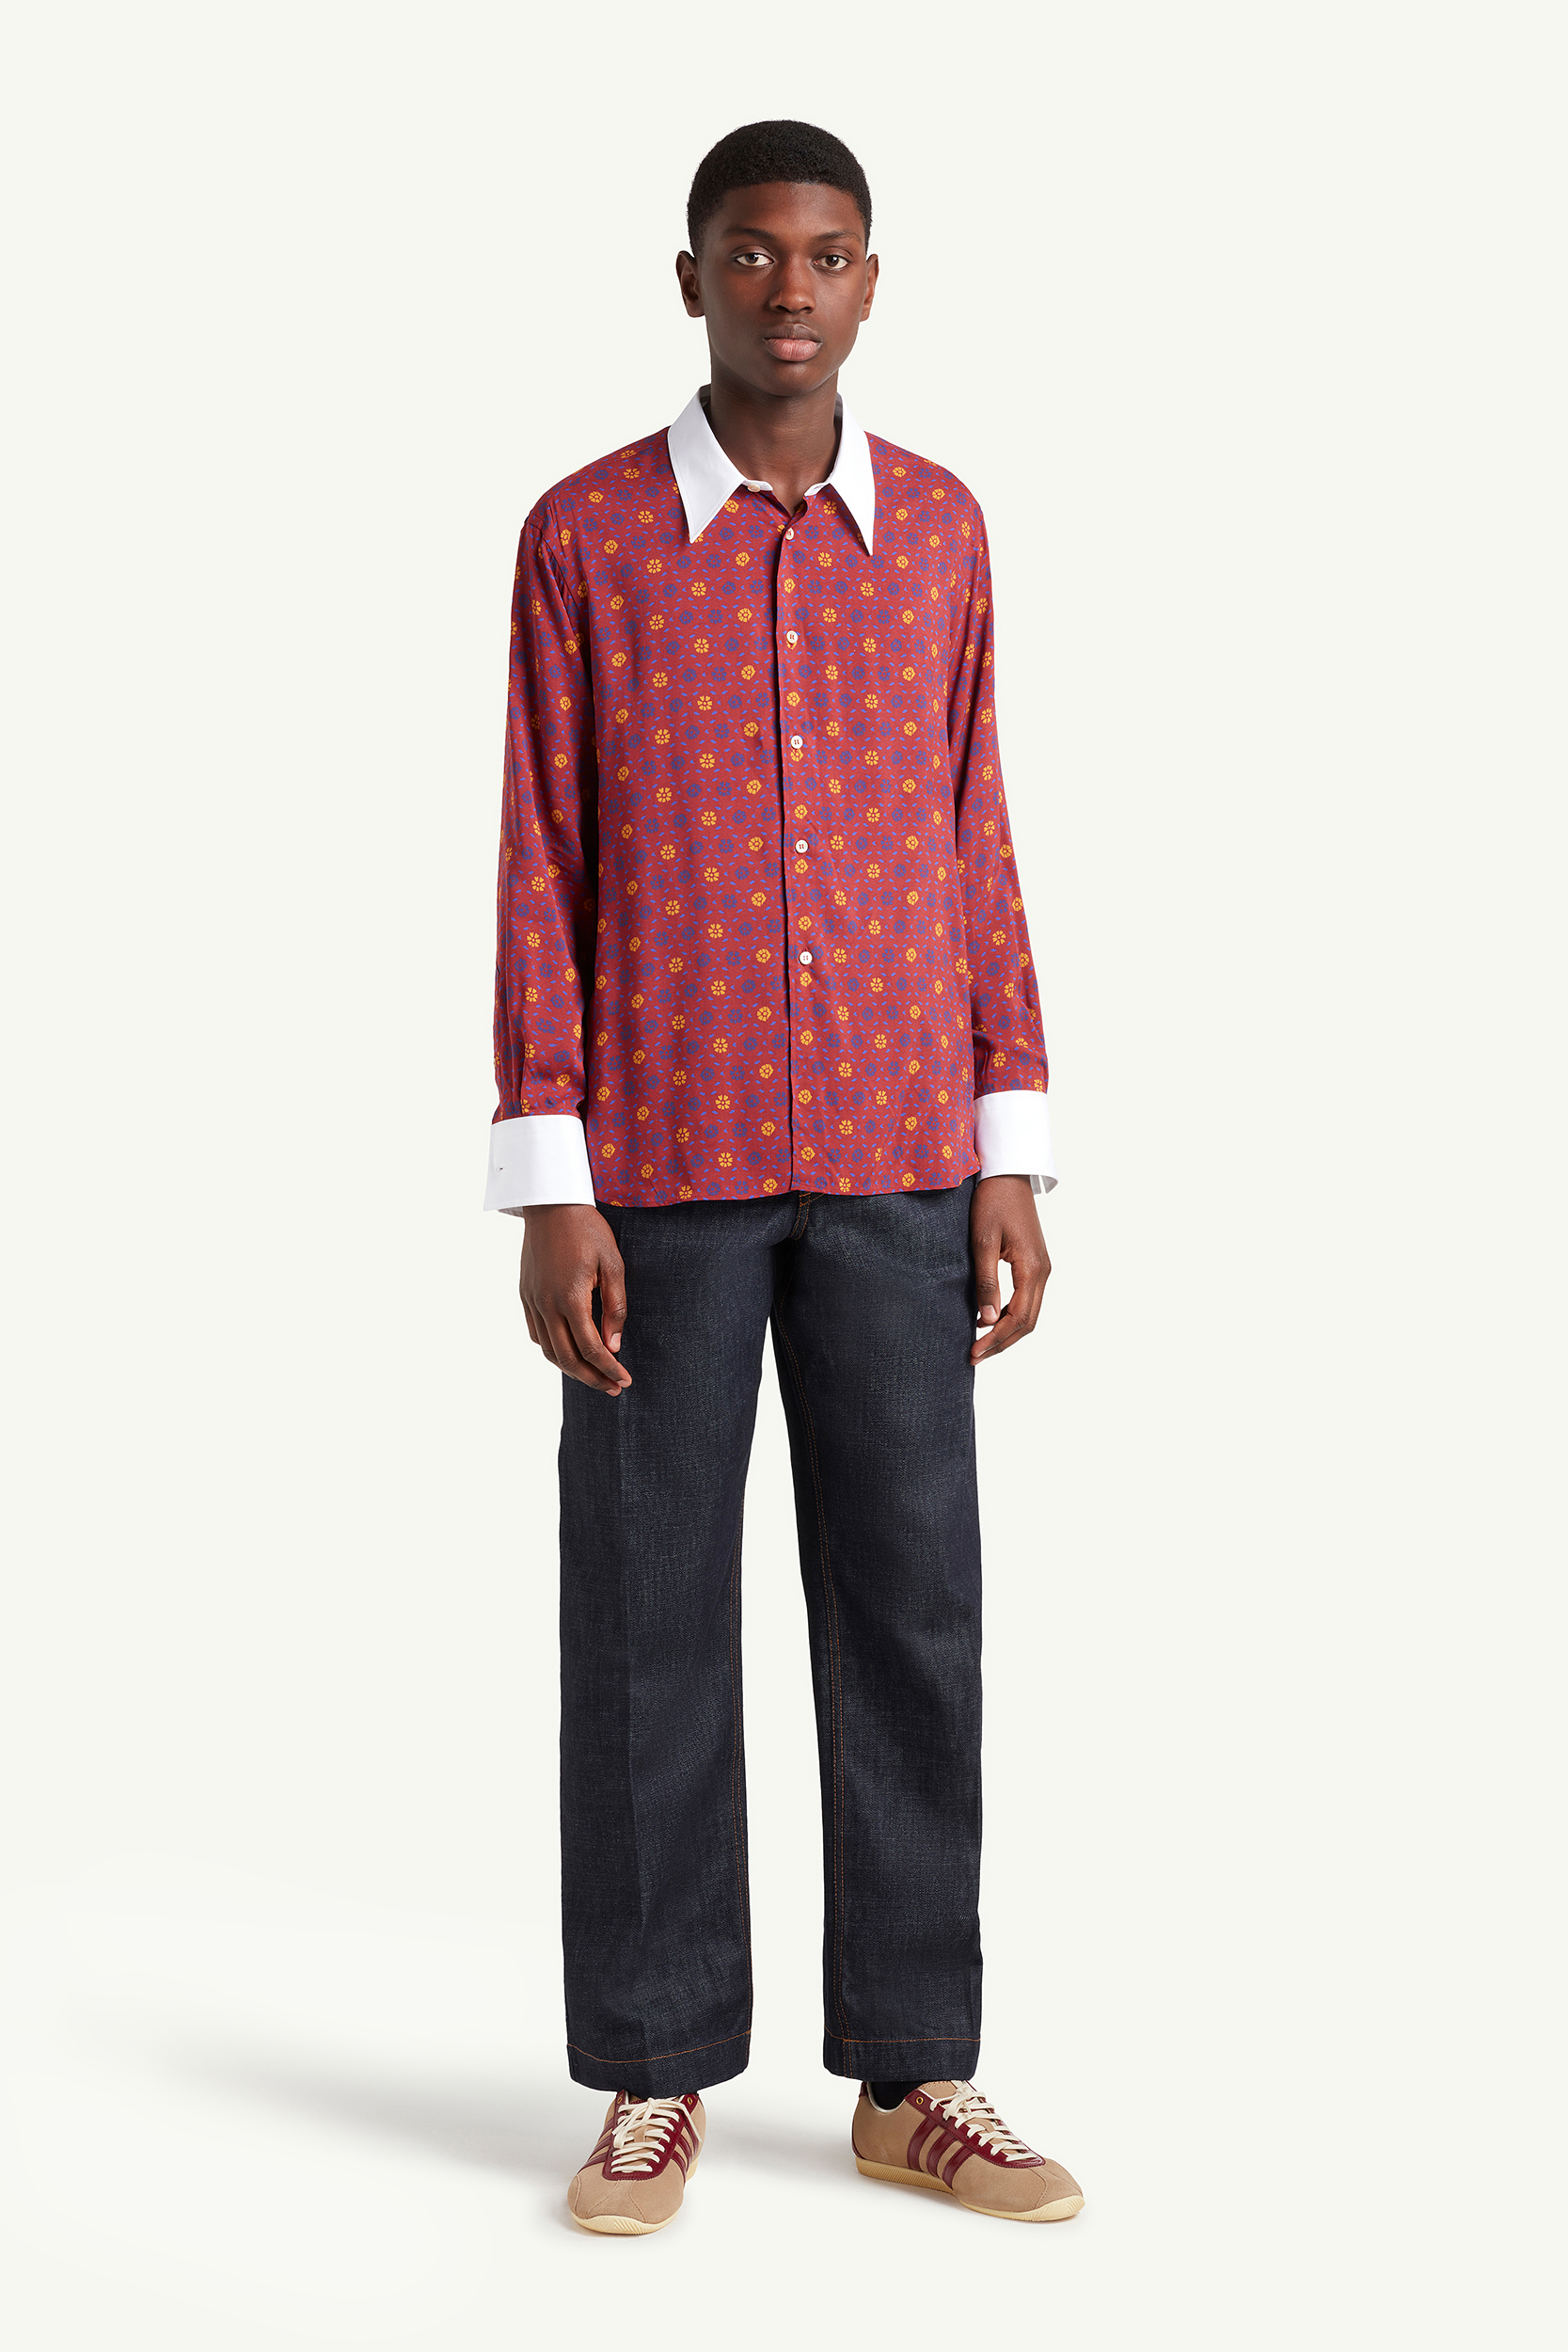 Wales Bonner Menswear Model wearing a white and burgundy pattern shirt with black cropped trousers | LRP